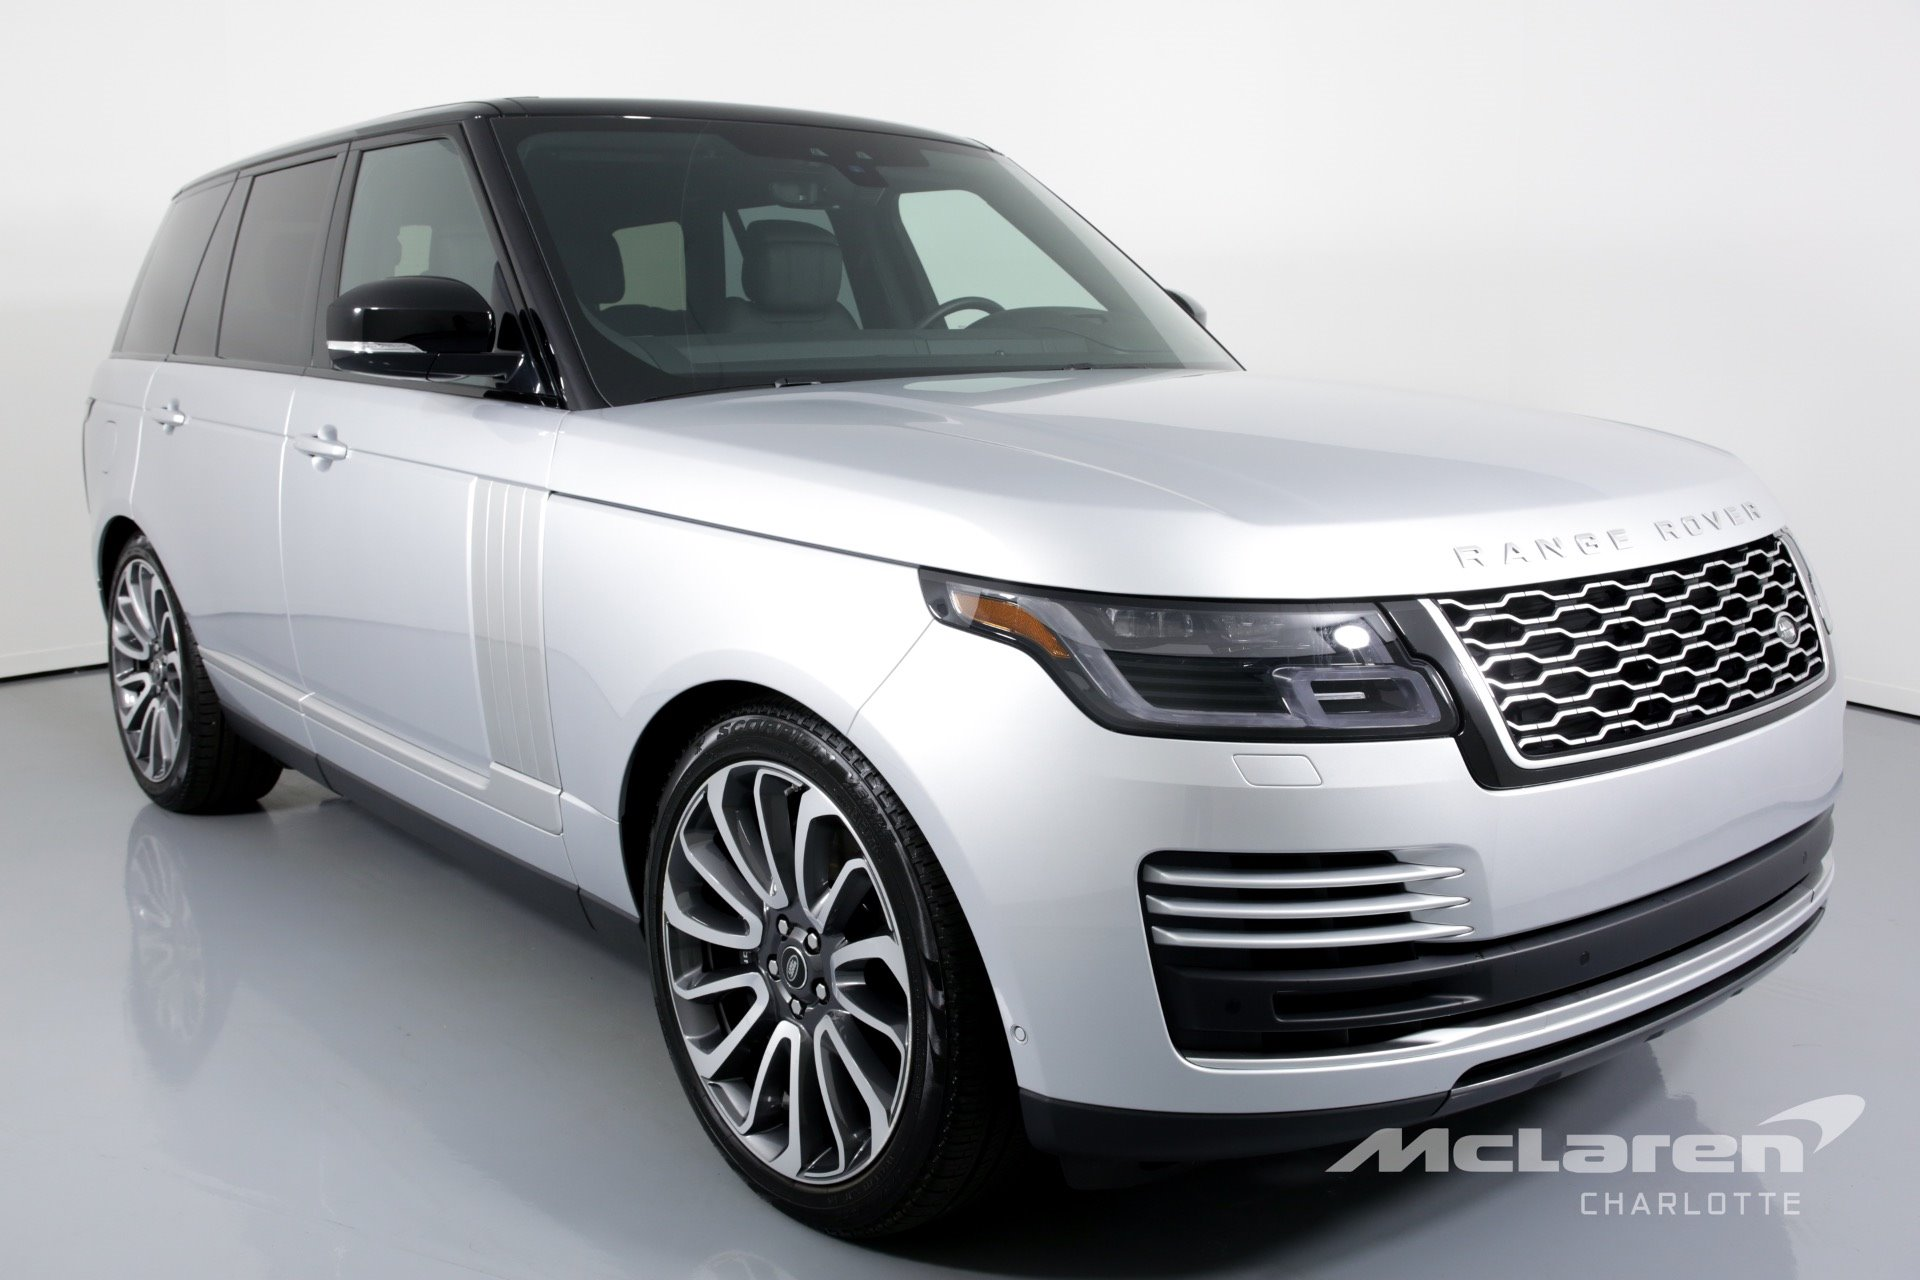 New 2019 Land Rover-Range Rover Supercharged LWB Range Rover Supercharged LWB for sale $109,950 at M and V Leasing in Brooklyn NY 11223 1